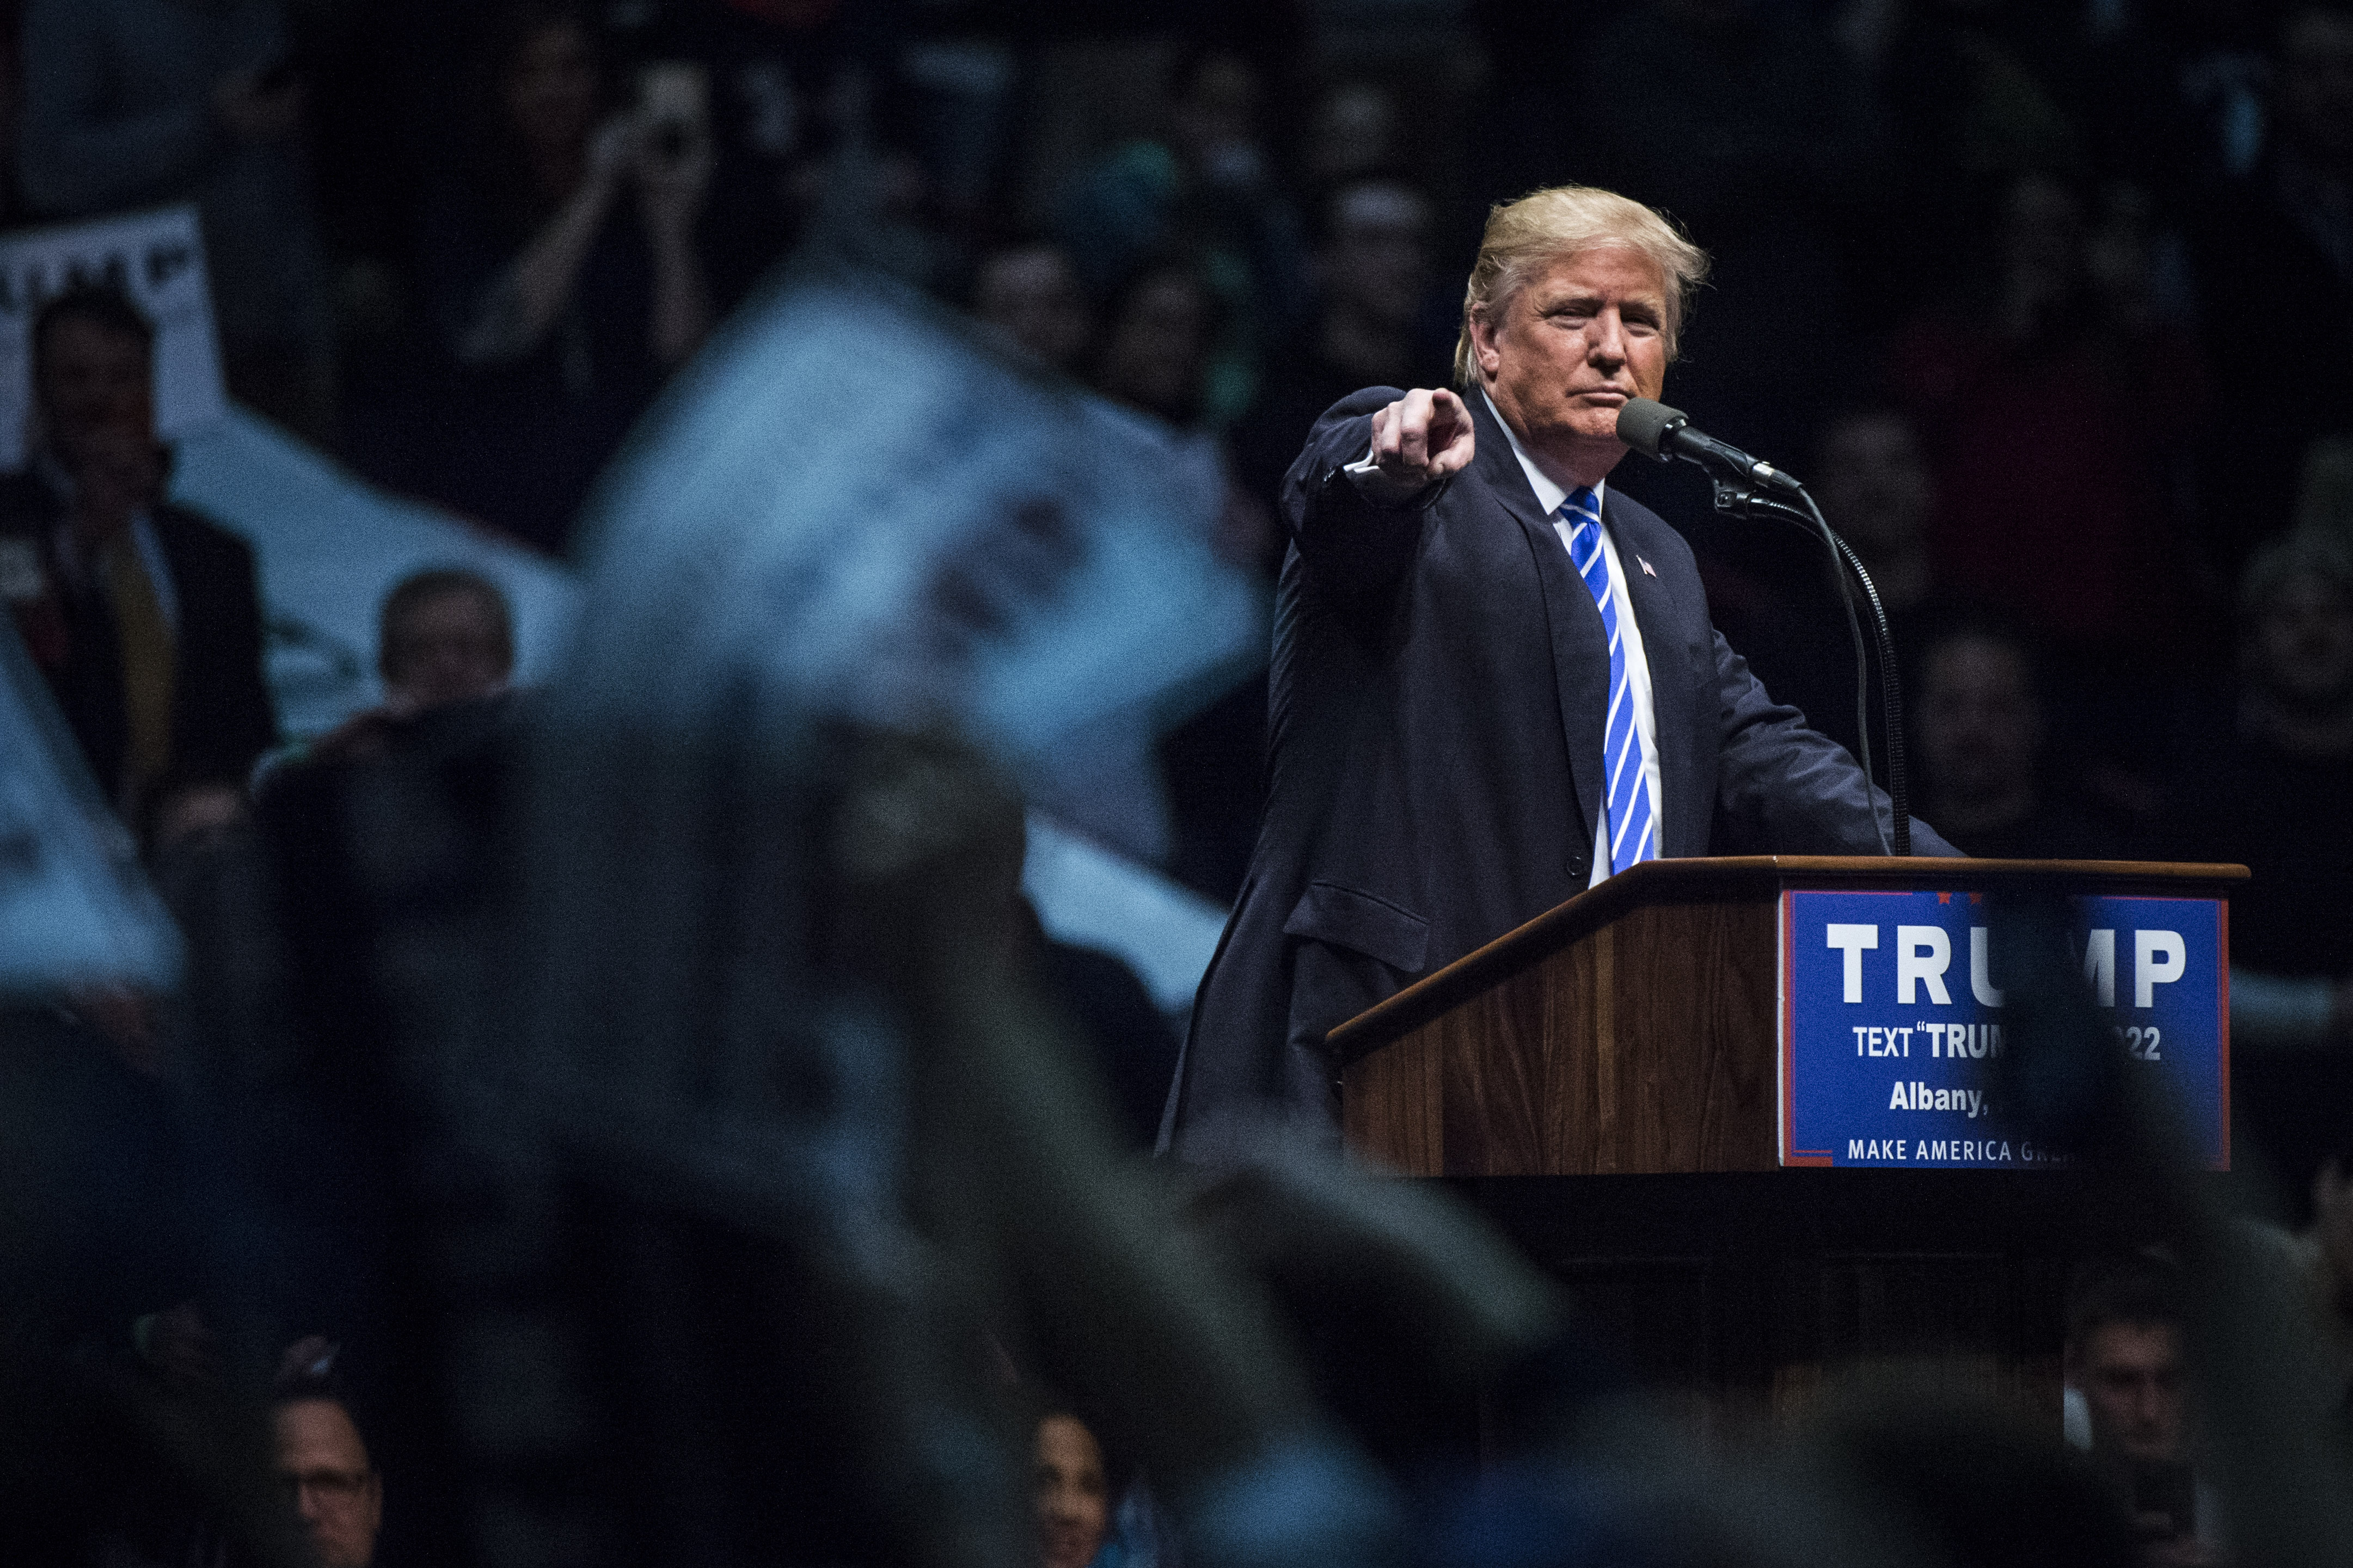 Republican presidential candidate Donald Trump points to a protestor as he speaks during a campaign event at the Times Union Center in Albany, N.Y. on April 11.